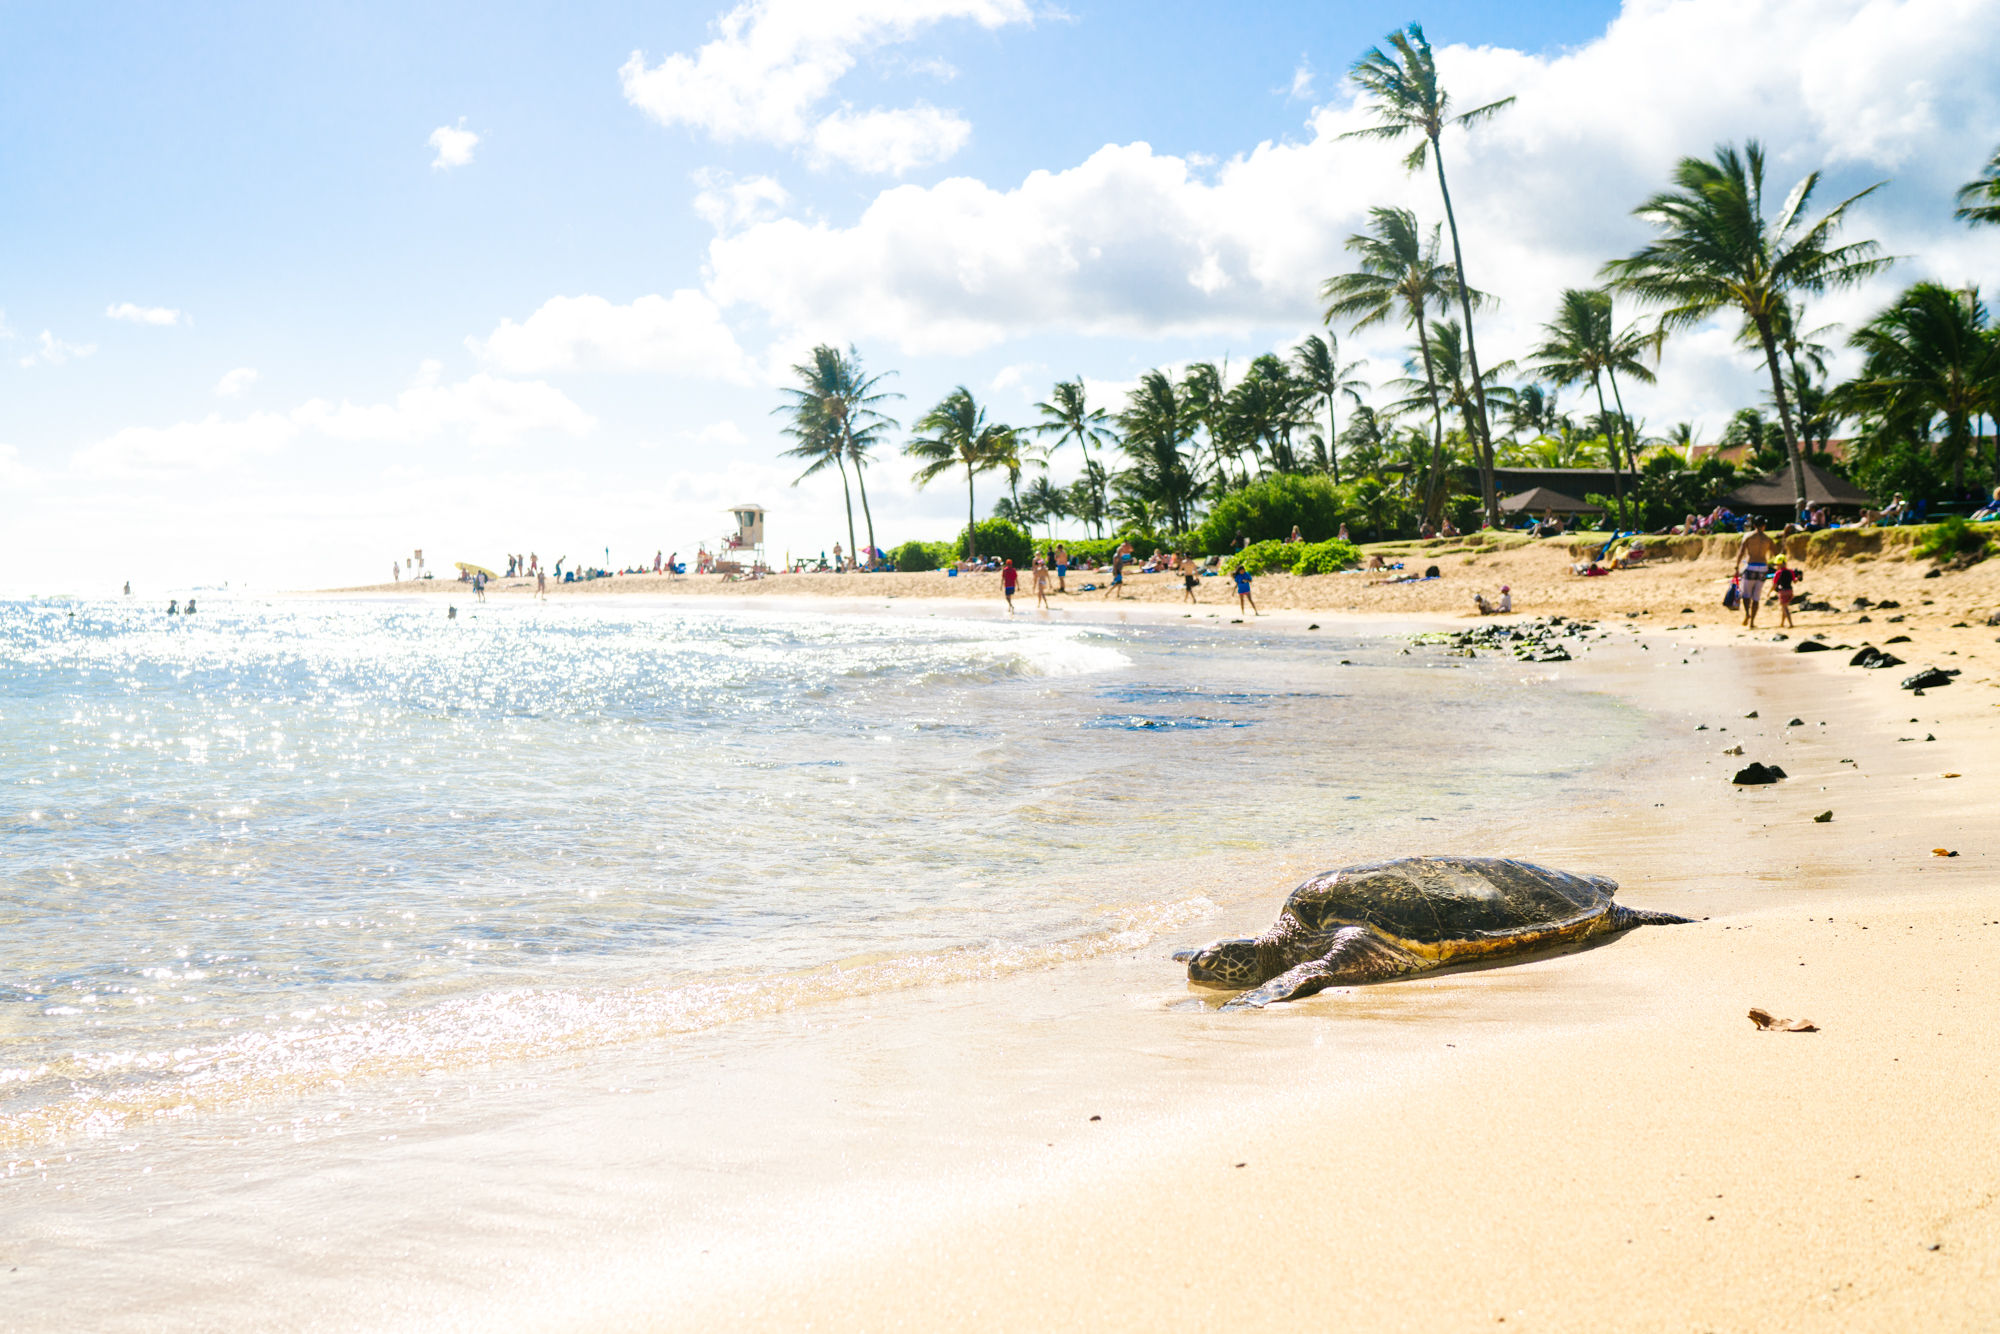 This beach in Kauai has the best snorkeling | Never Settle Travel